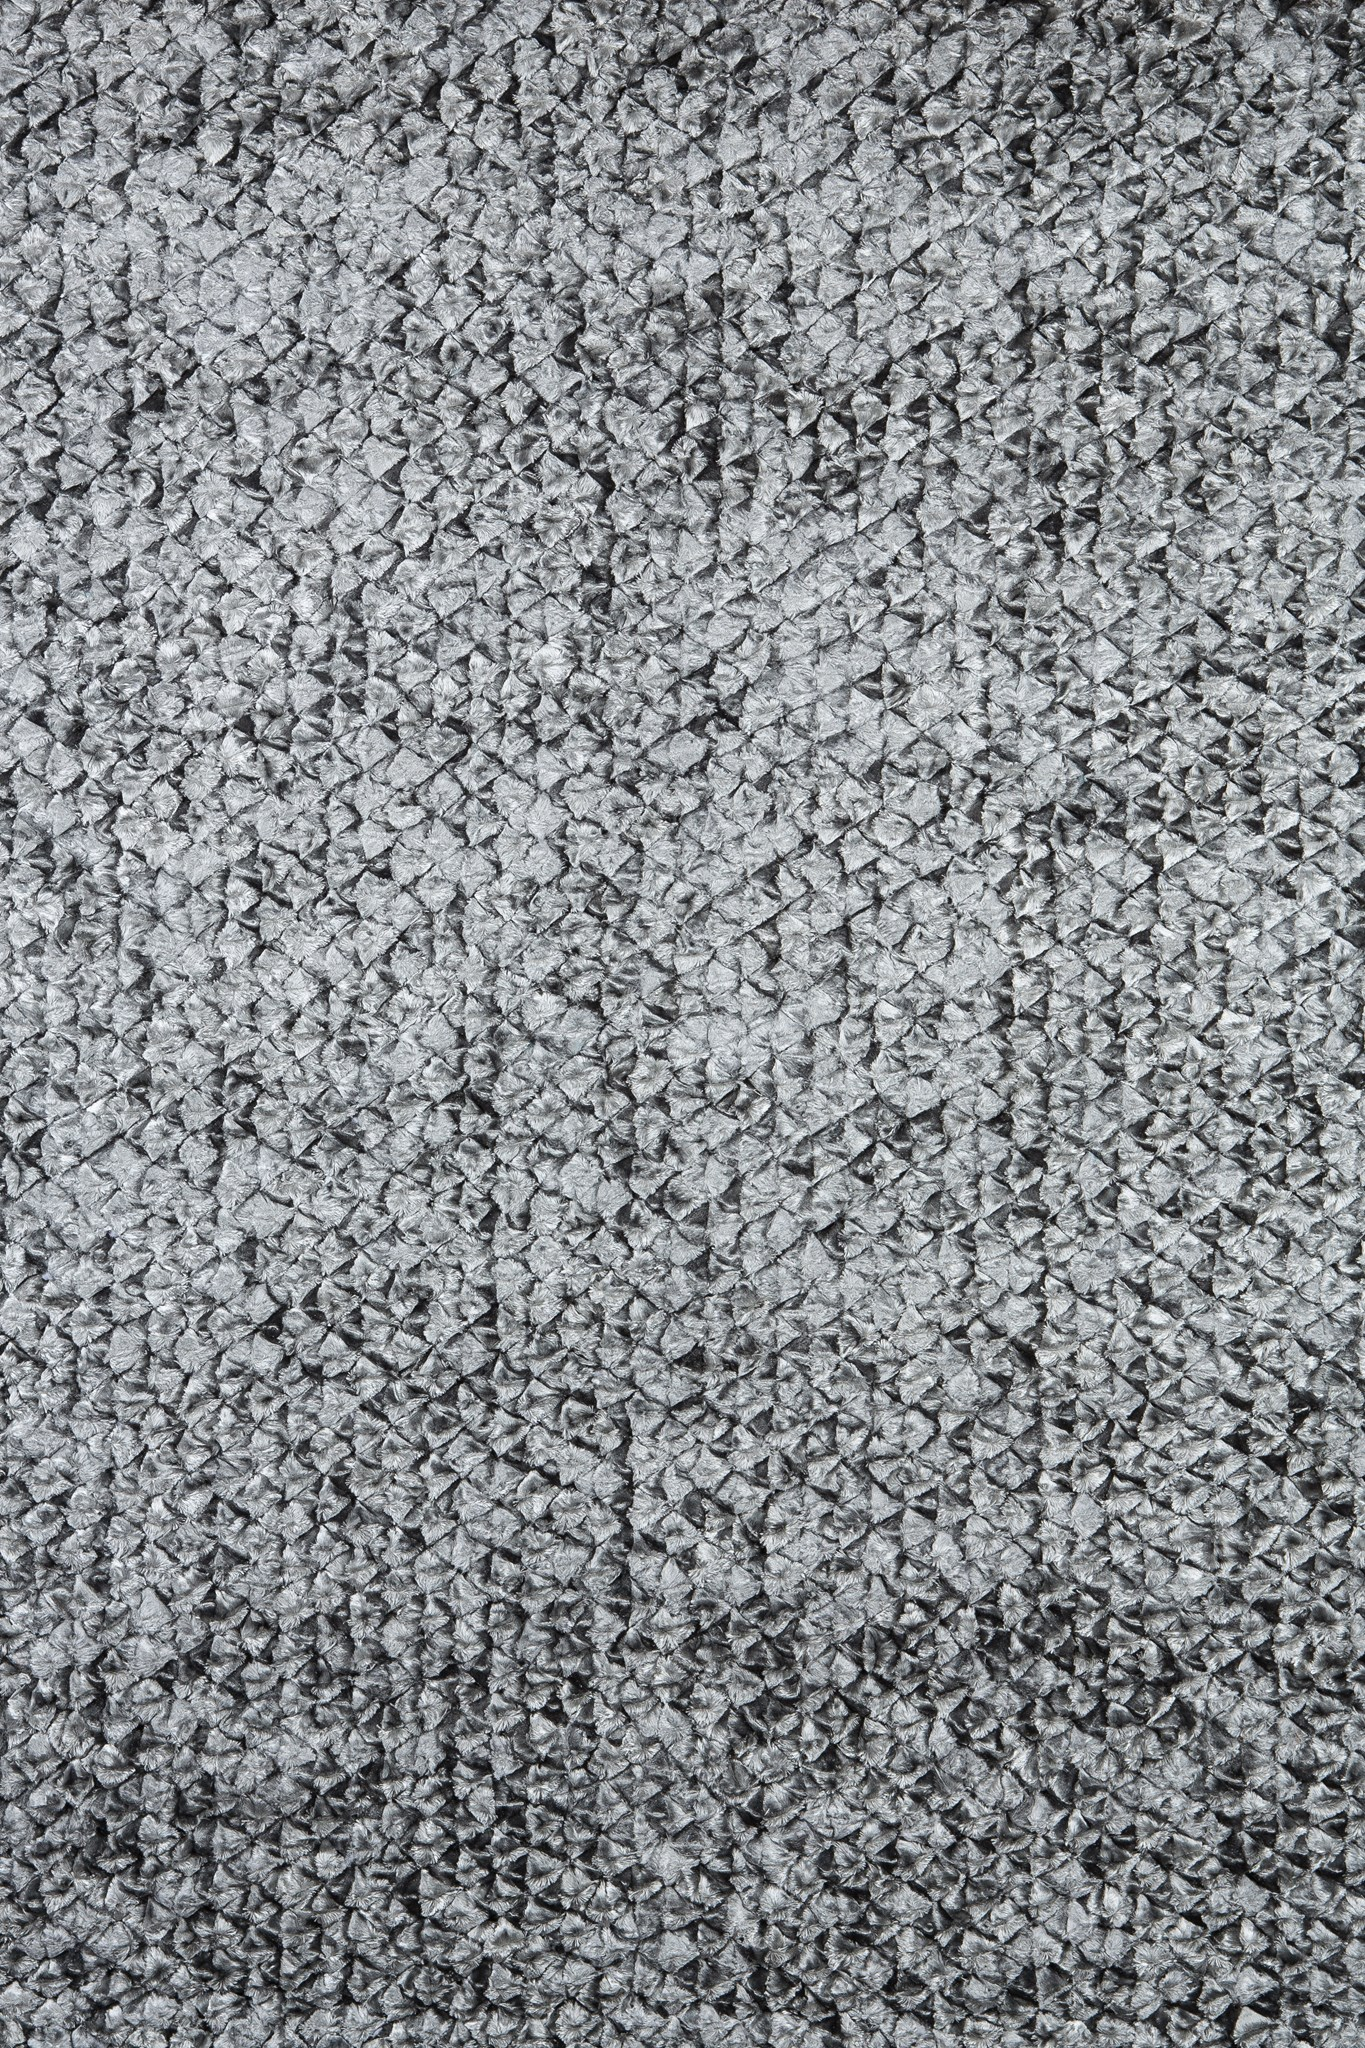 Shimmer Pebble Rug: 6'x9' Graphite